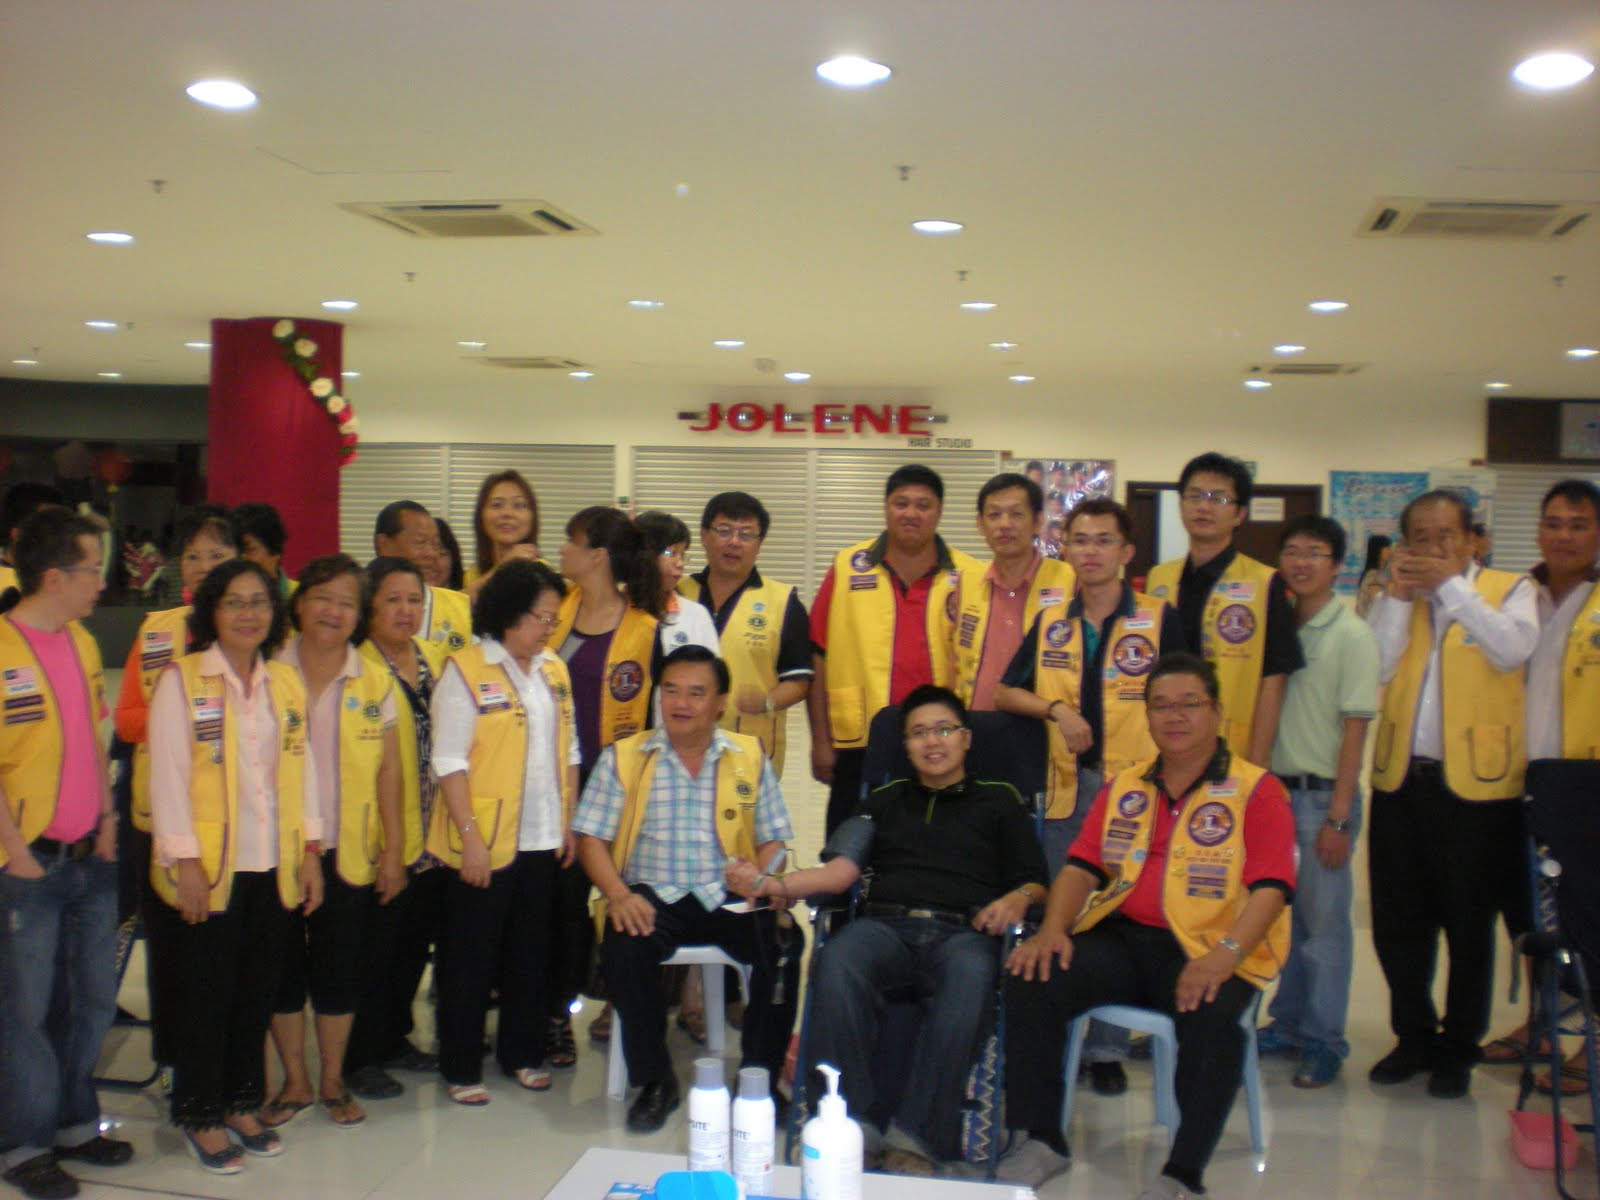 Group photos with other lions clubs during the caign